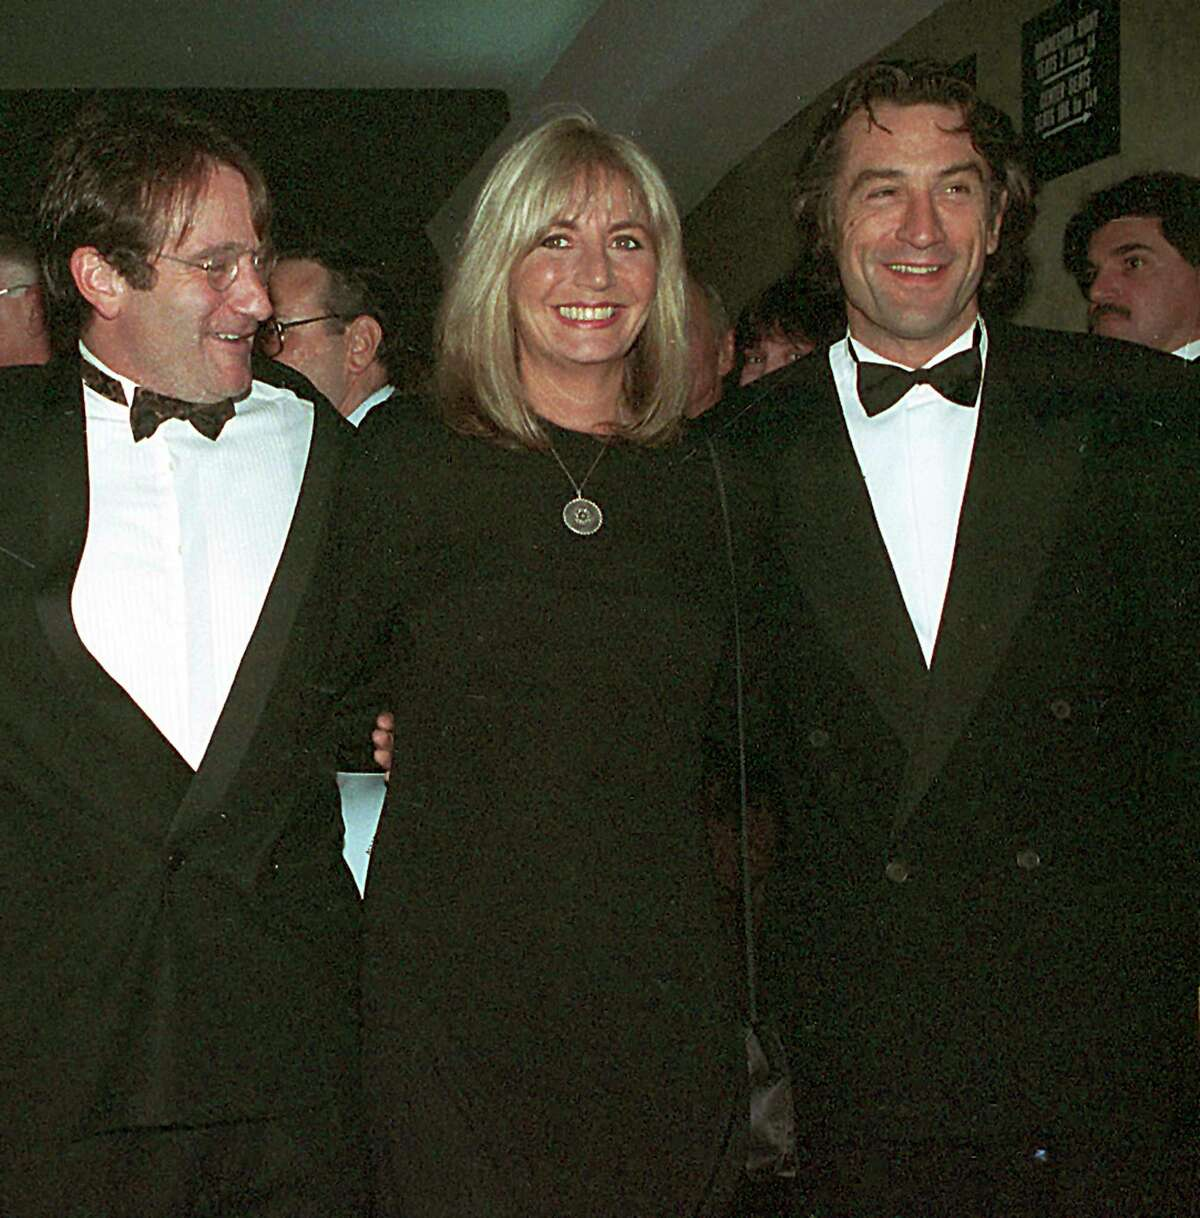 FILE - In this Dec. 17, 1990 file photo, director Penny Marshall poses with co-stars of